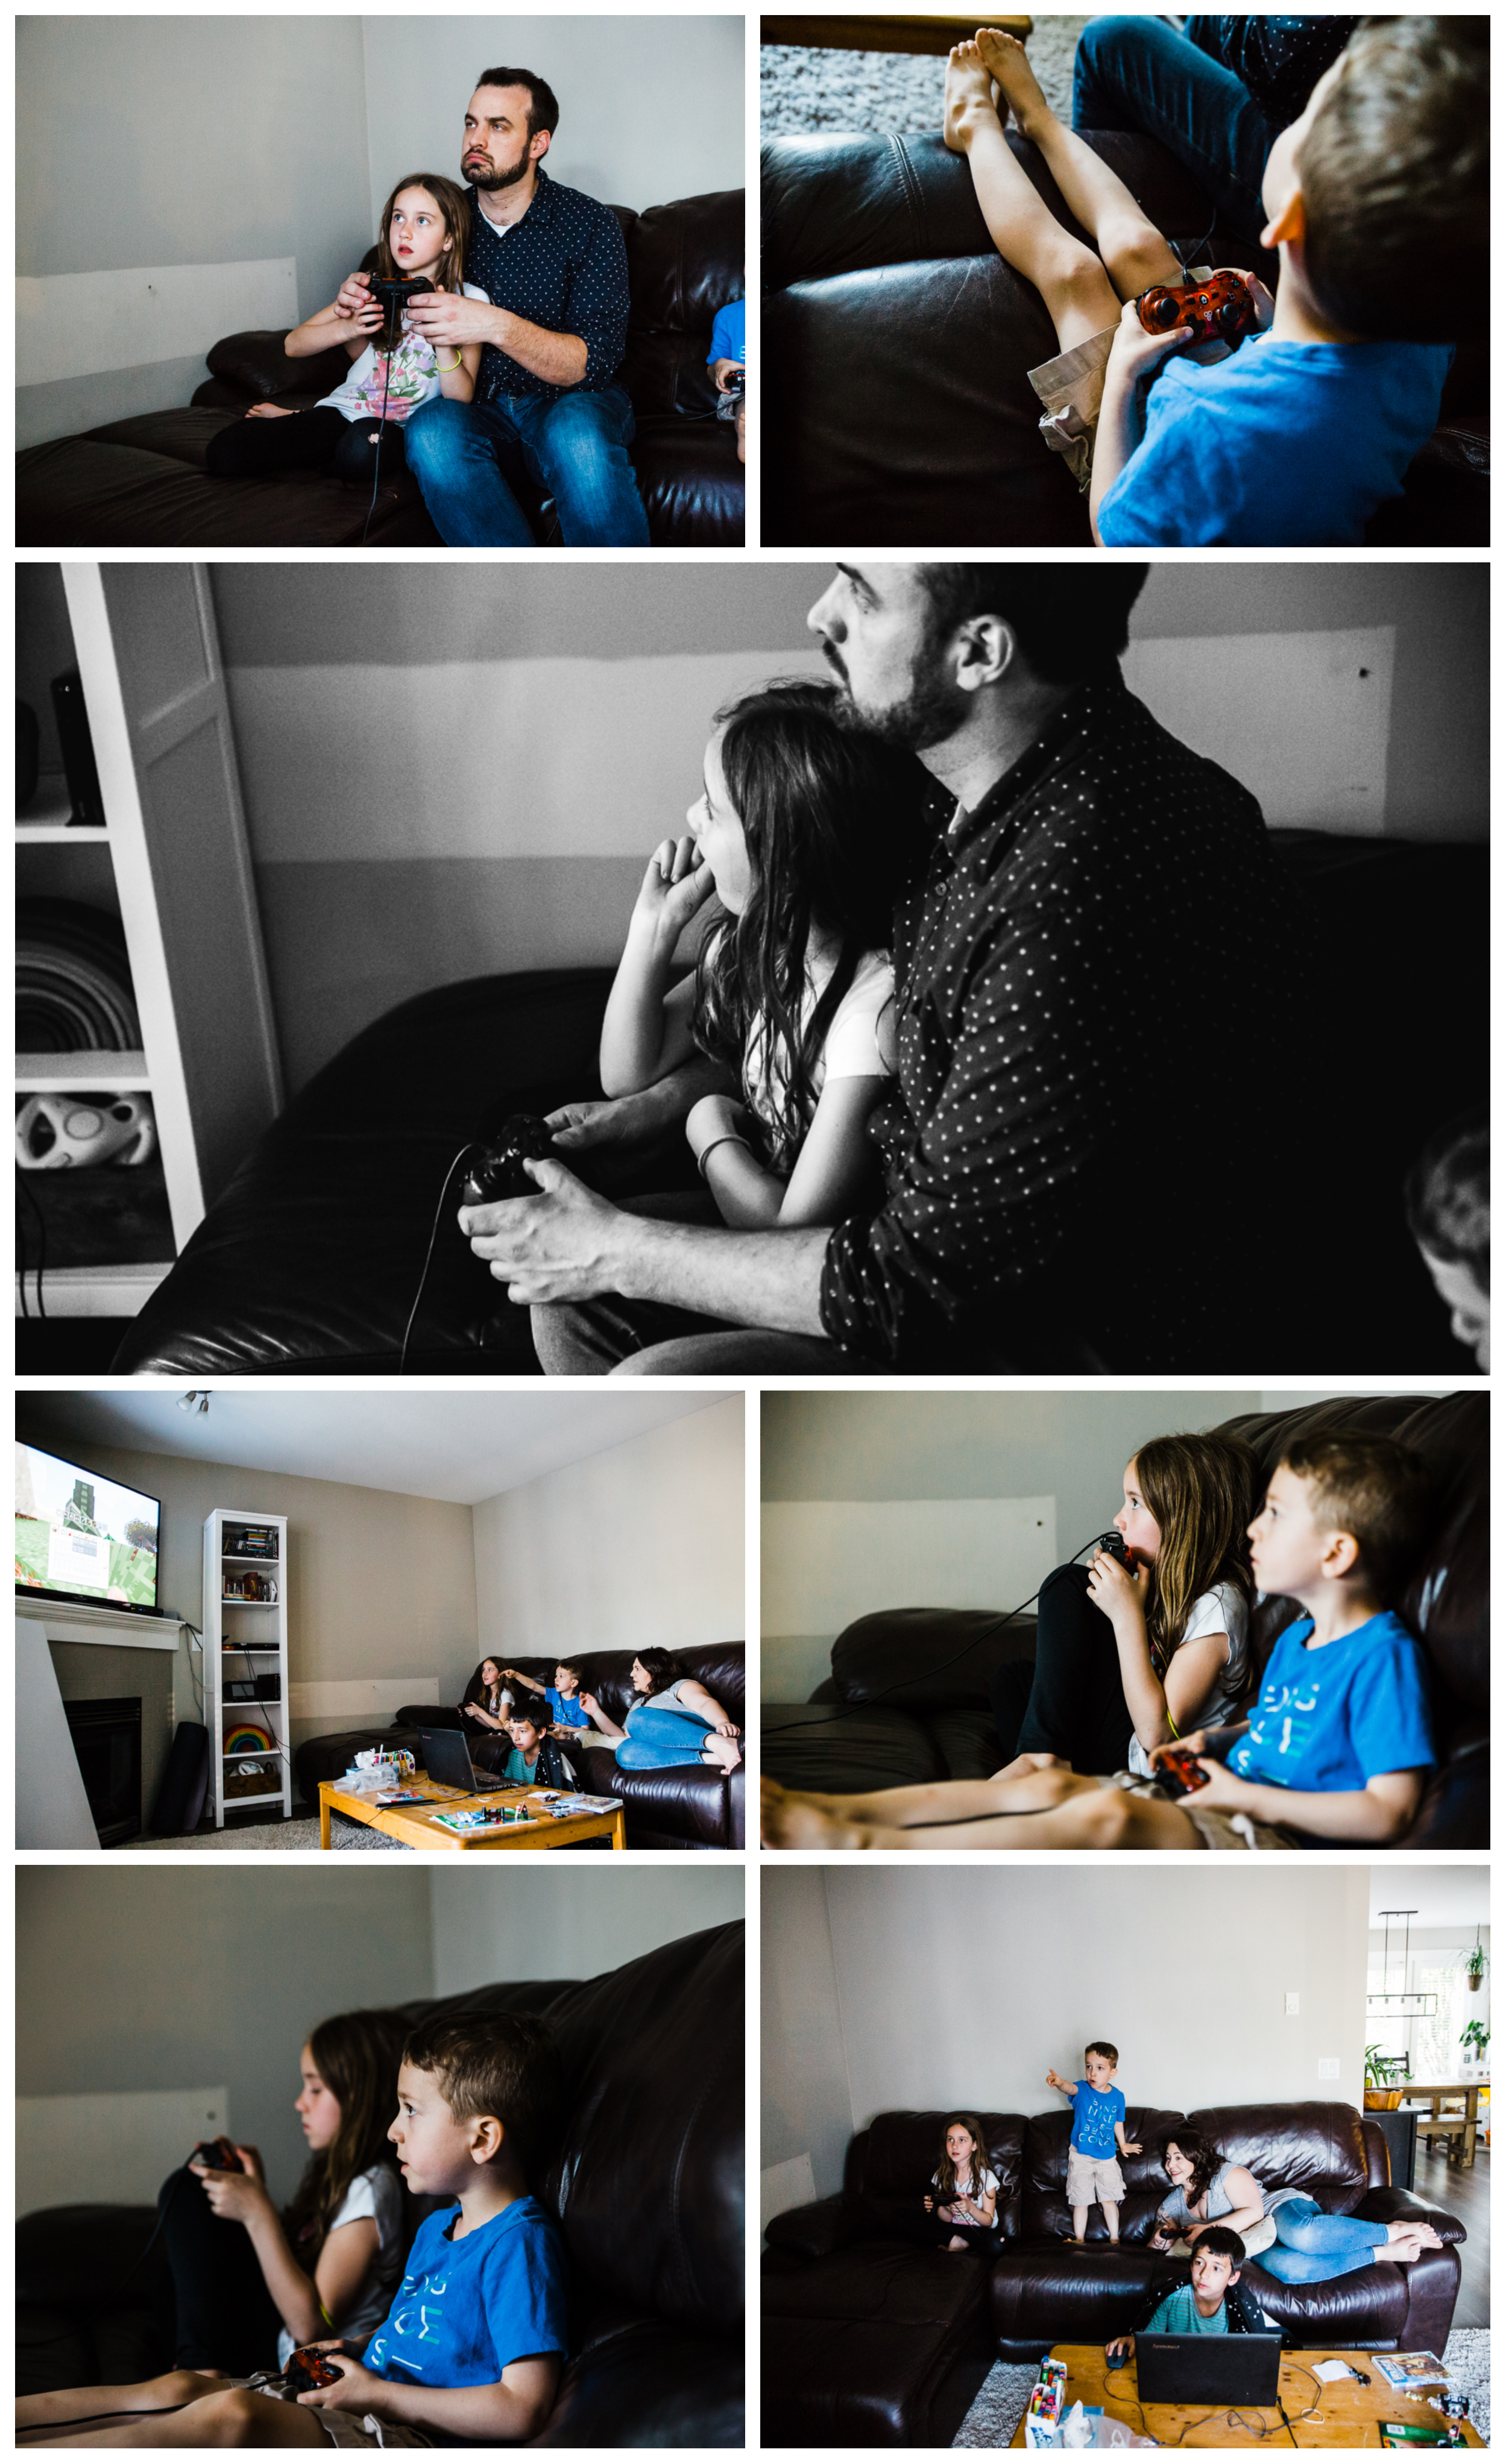 playing playstation young family after dinner blended family.jpg